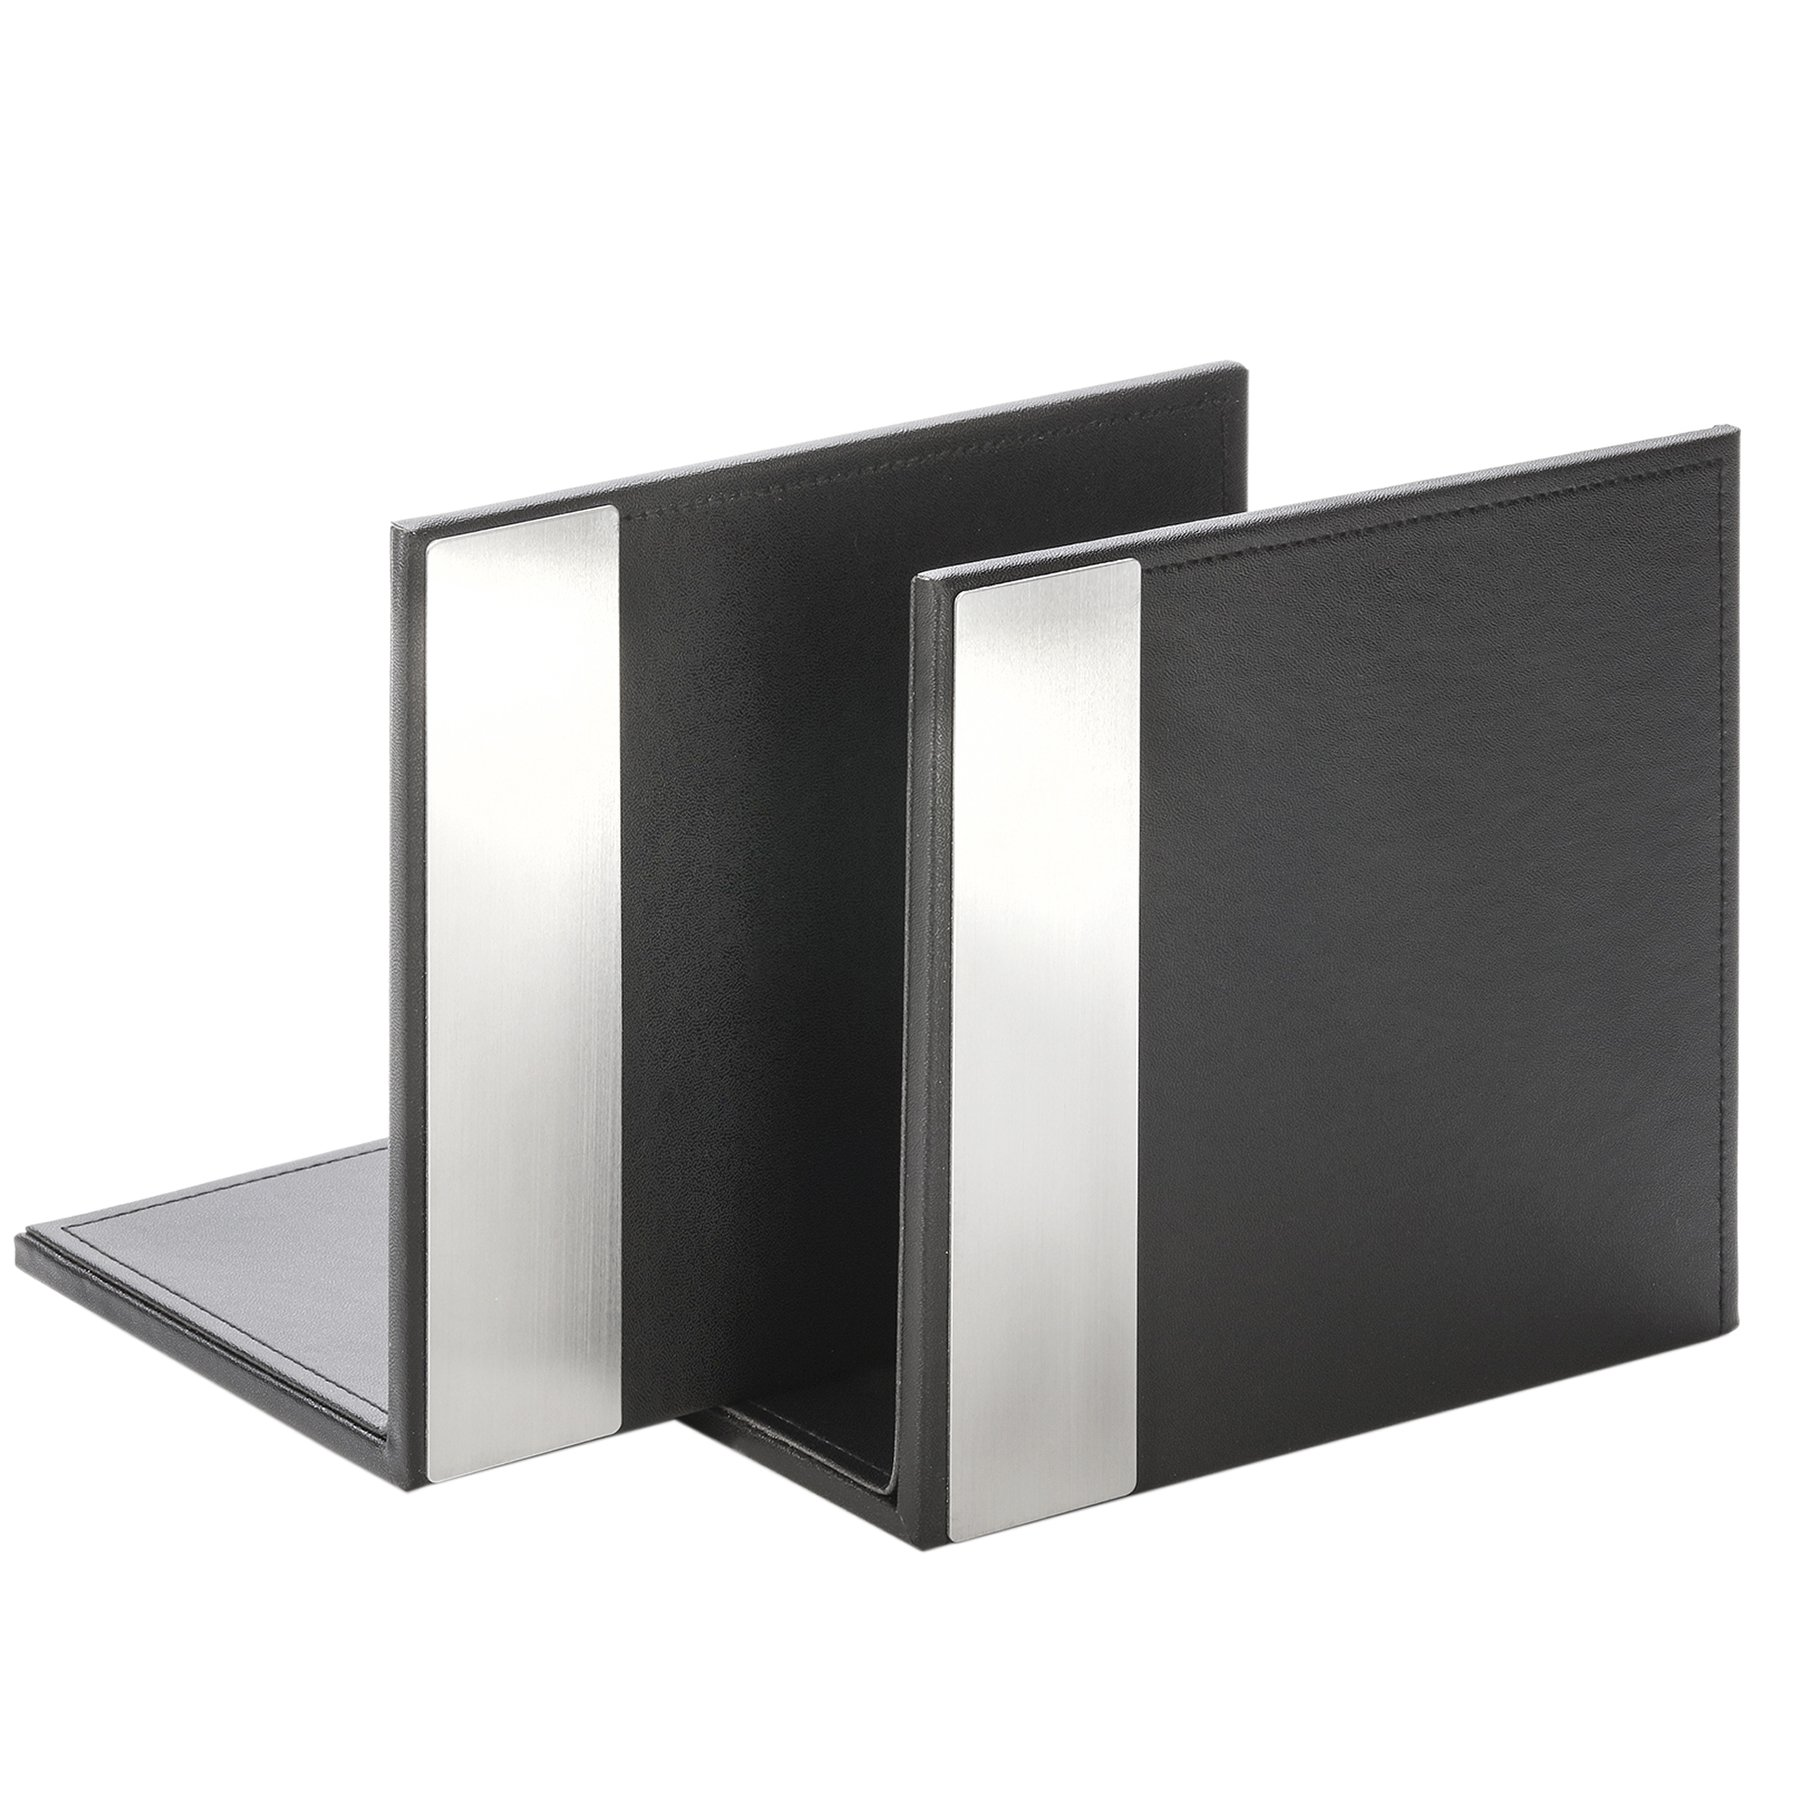 Artistic ART43008 Architect Line Leather-Like Bookends (Pair), Black with Brushed Metal & Matching Black Stitching and Velvet-Like Lining